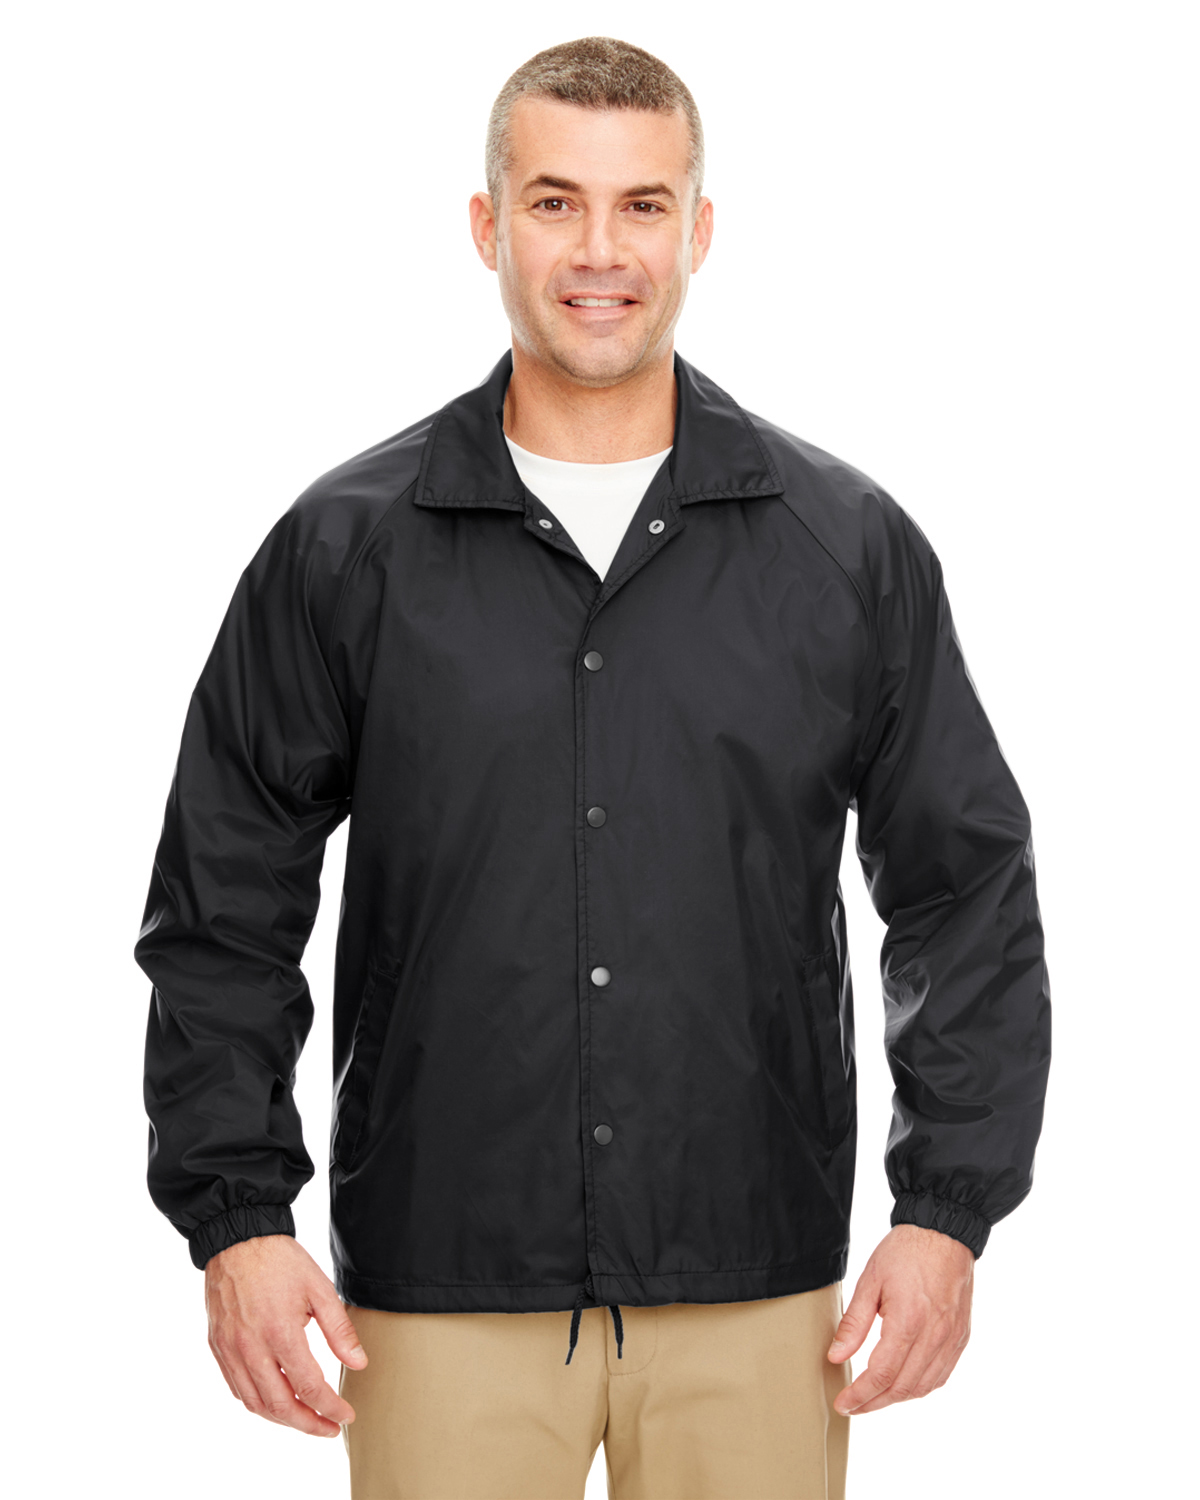 UltraClub 8944-Adult Nylon Coaches Jacket